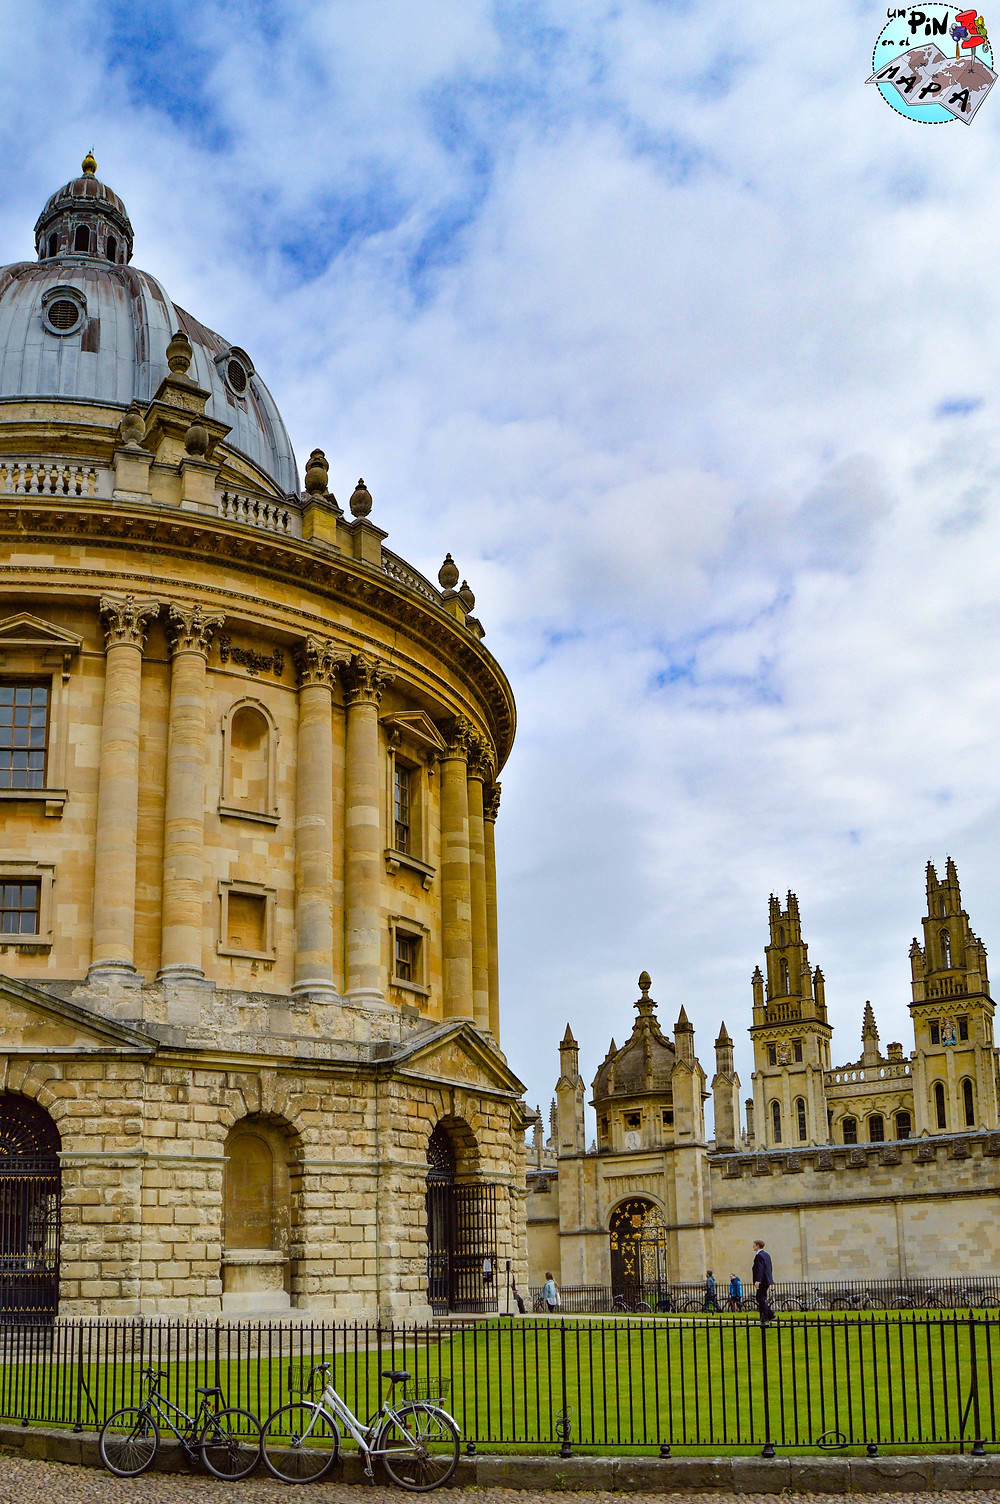 Oxford | Un Pin en el Mapa